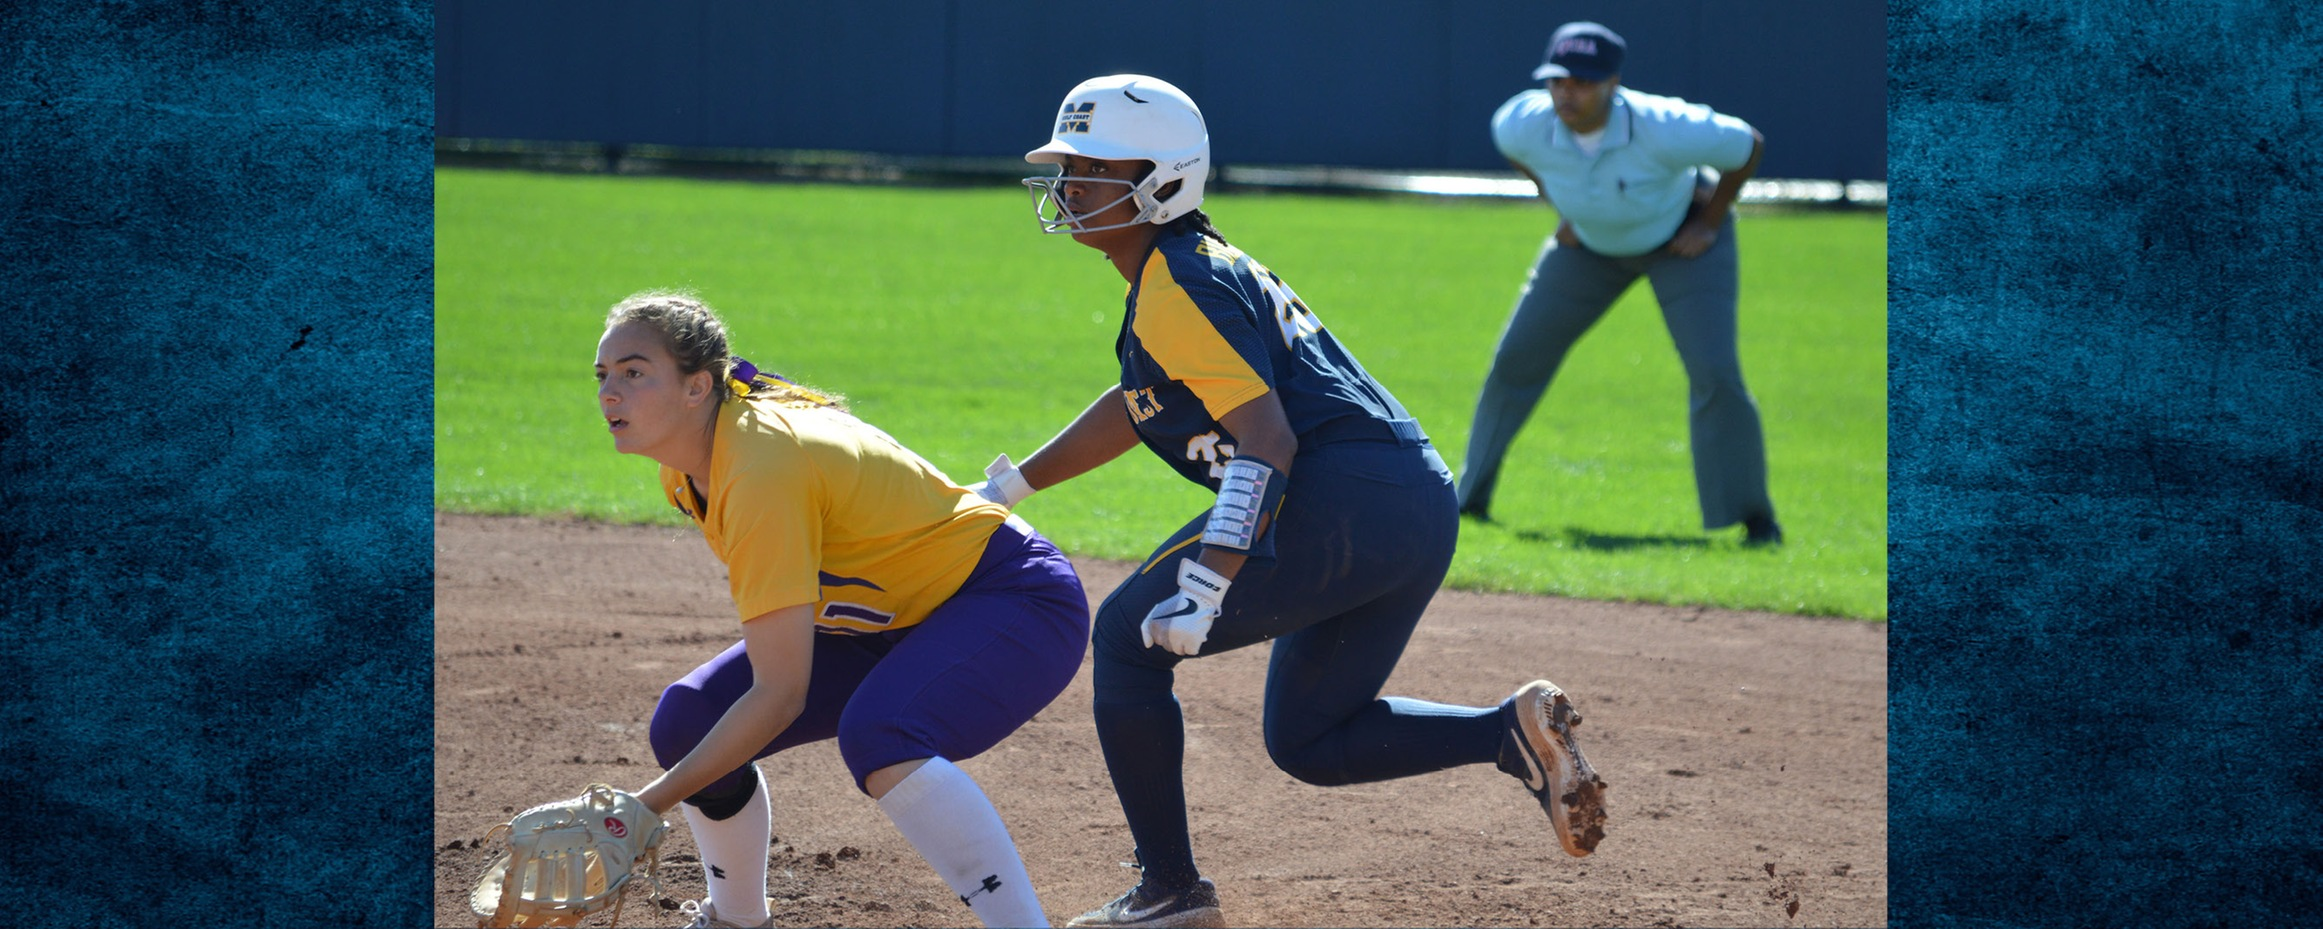 Gulf Coast splits with No. 3 LSU-E